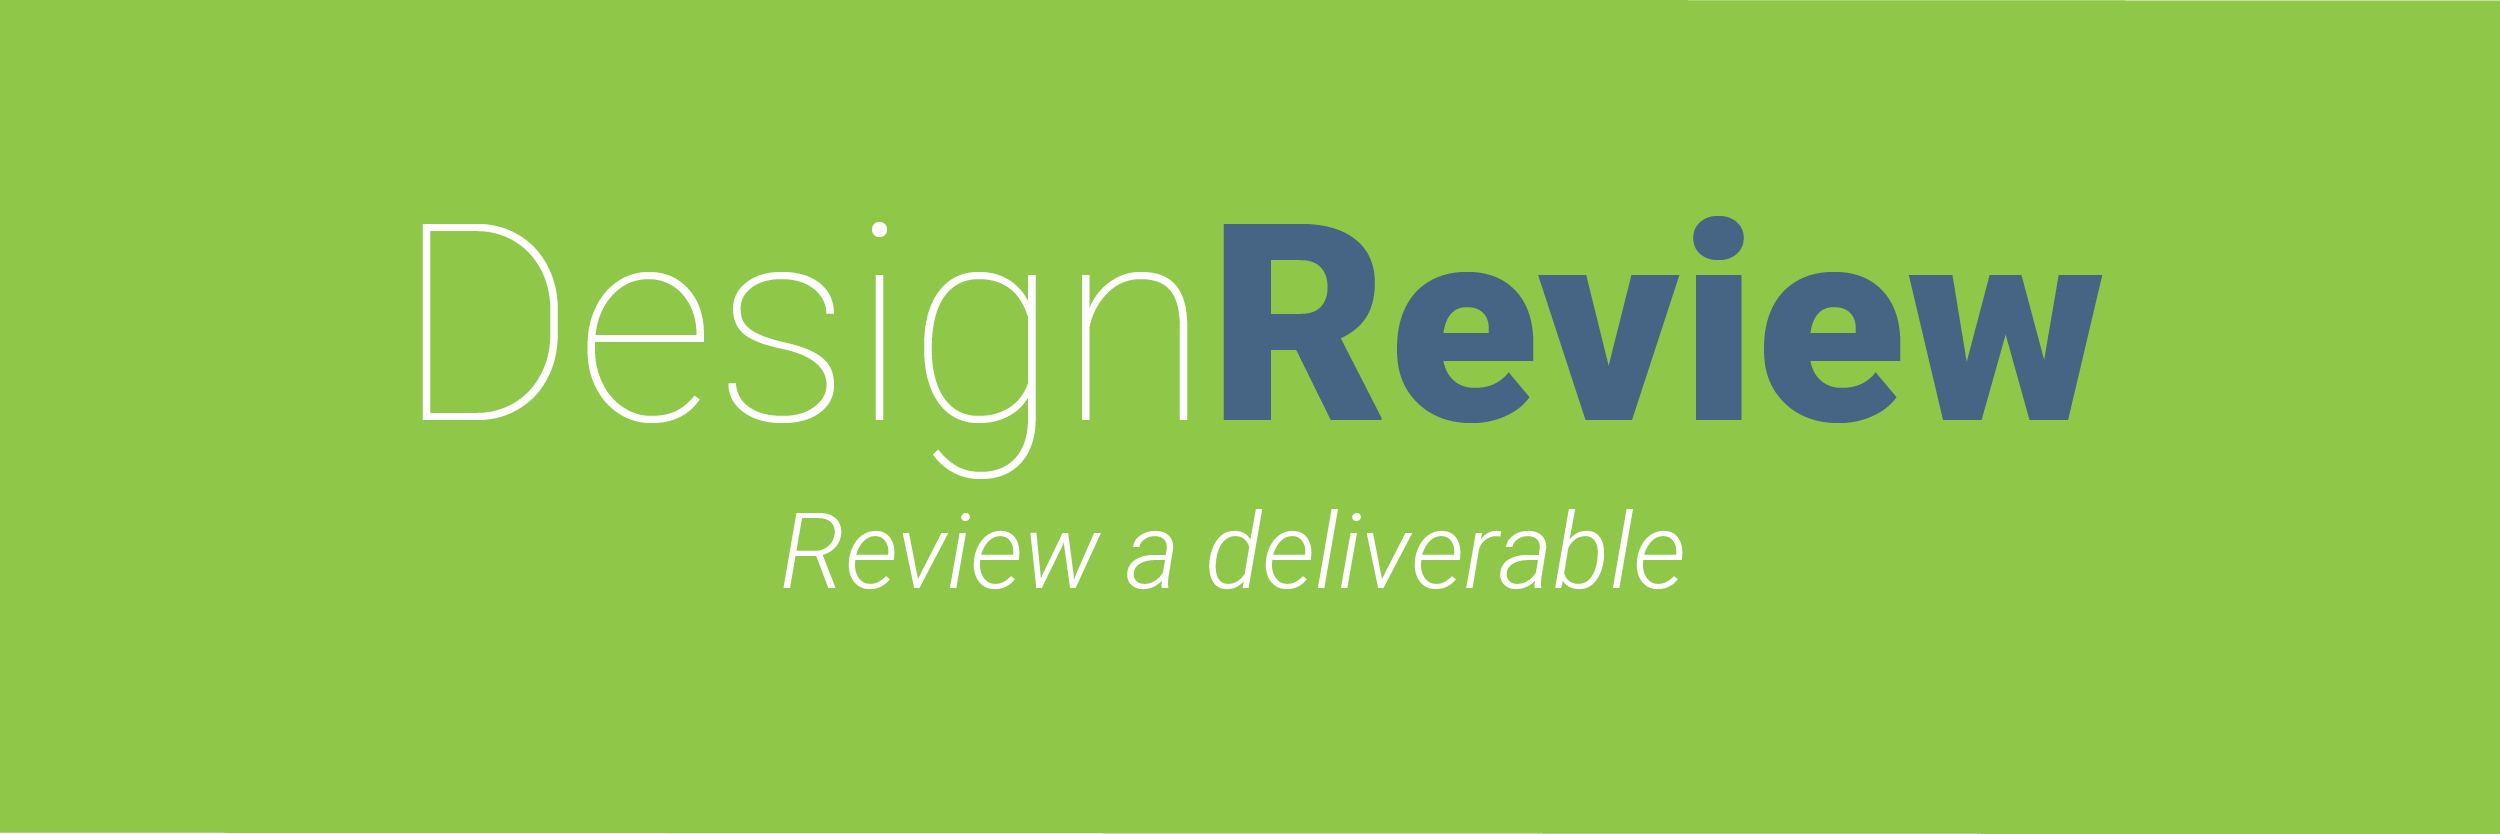 Design Review-01